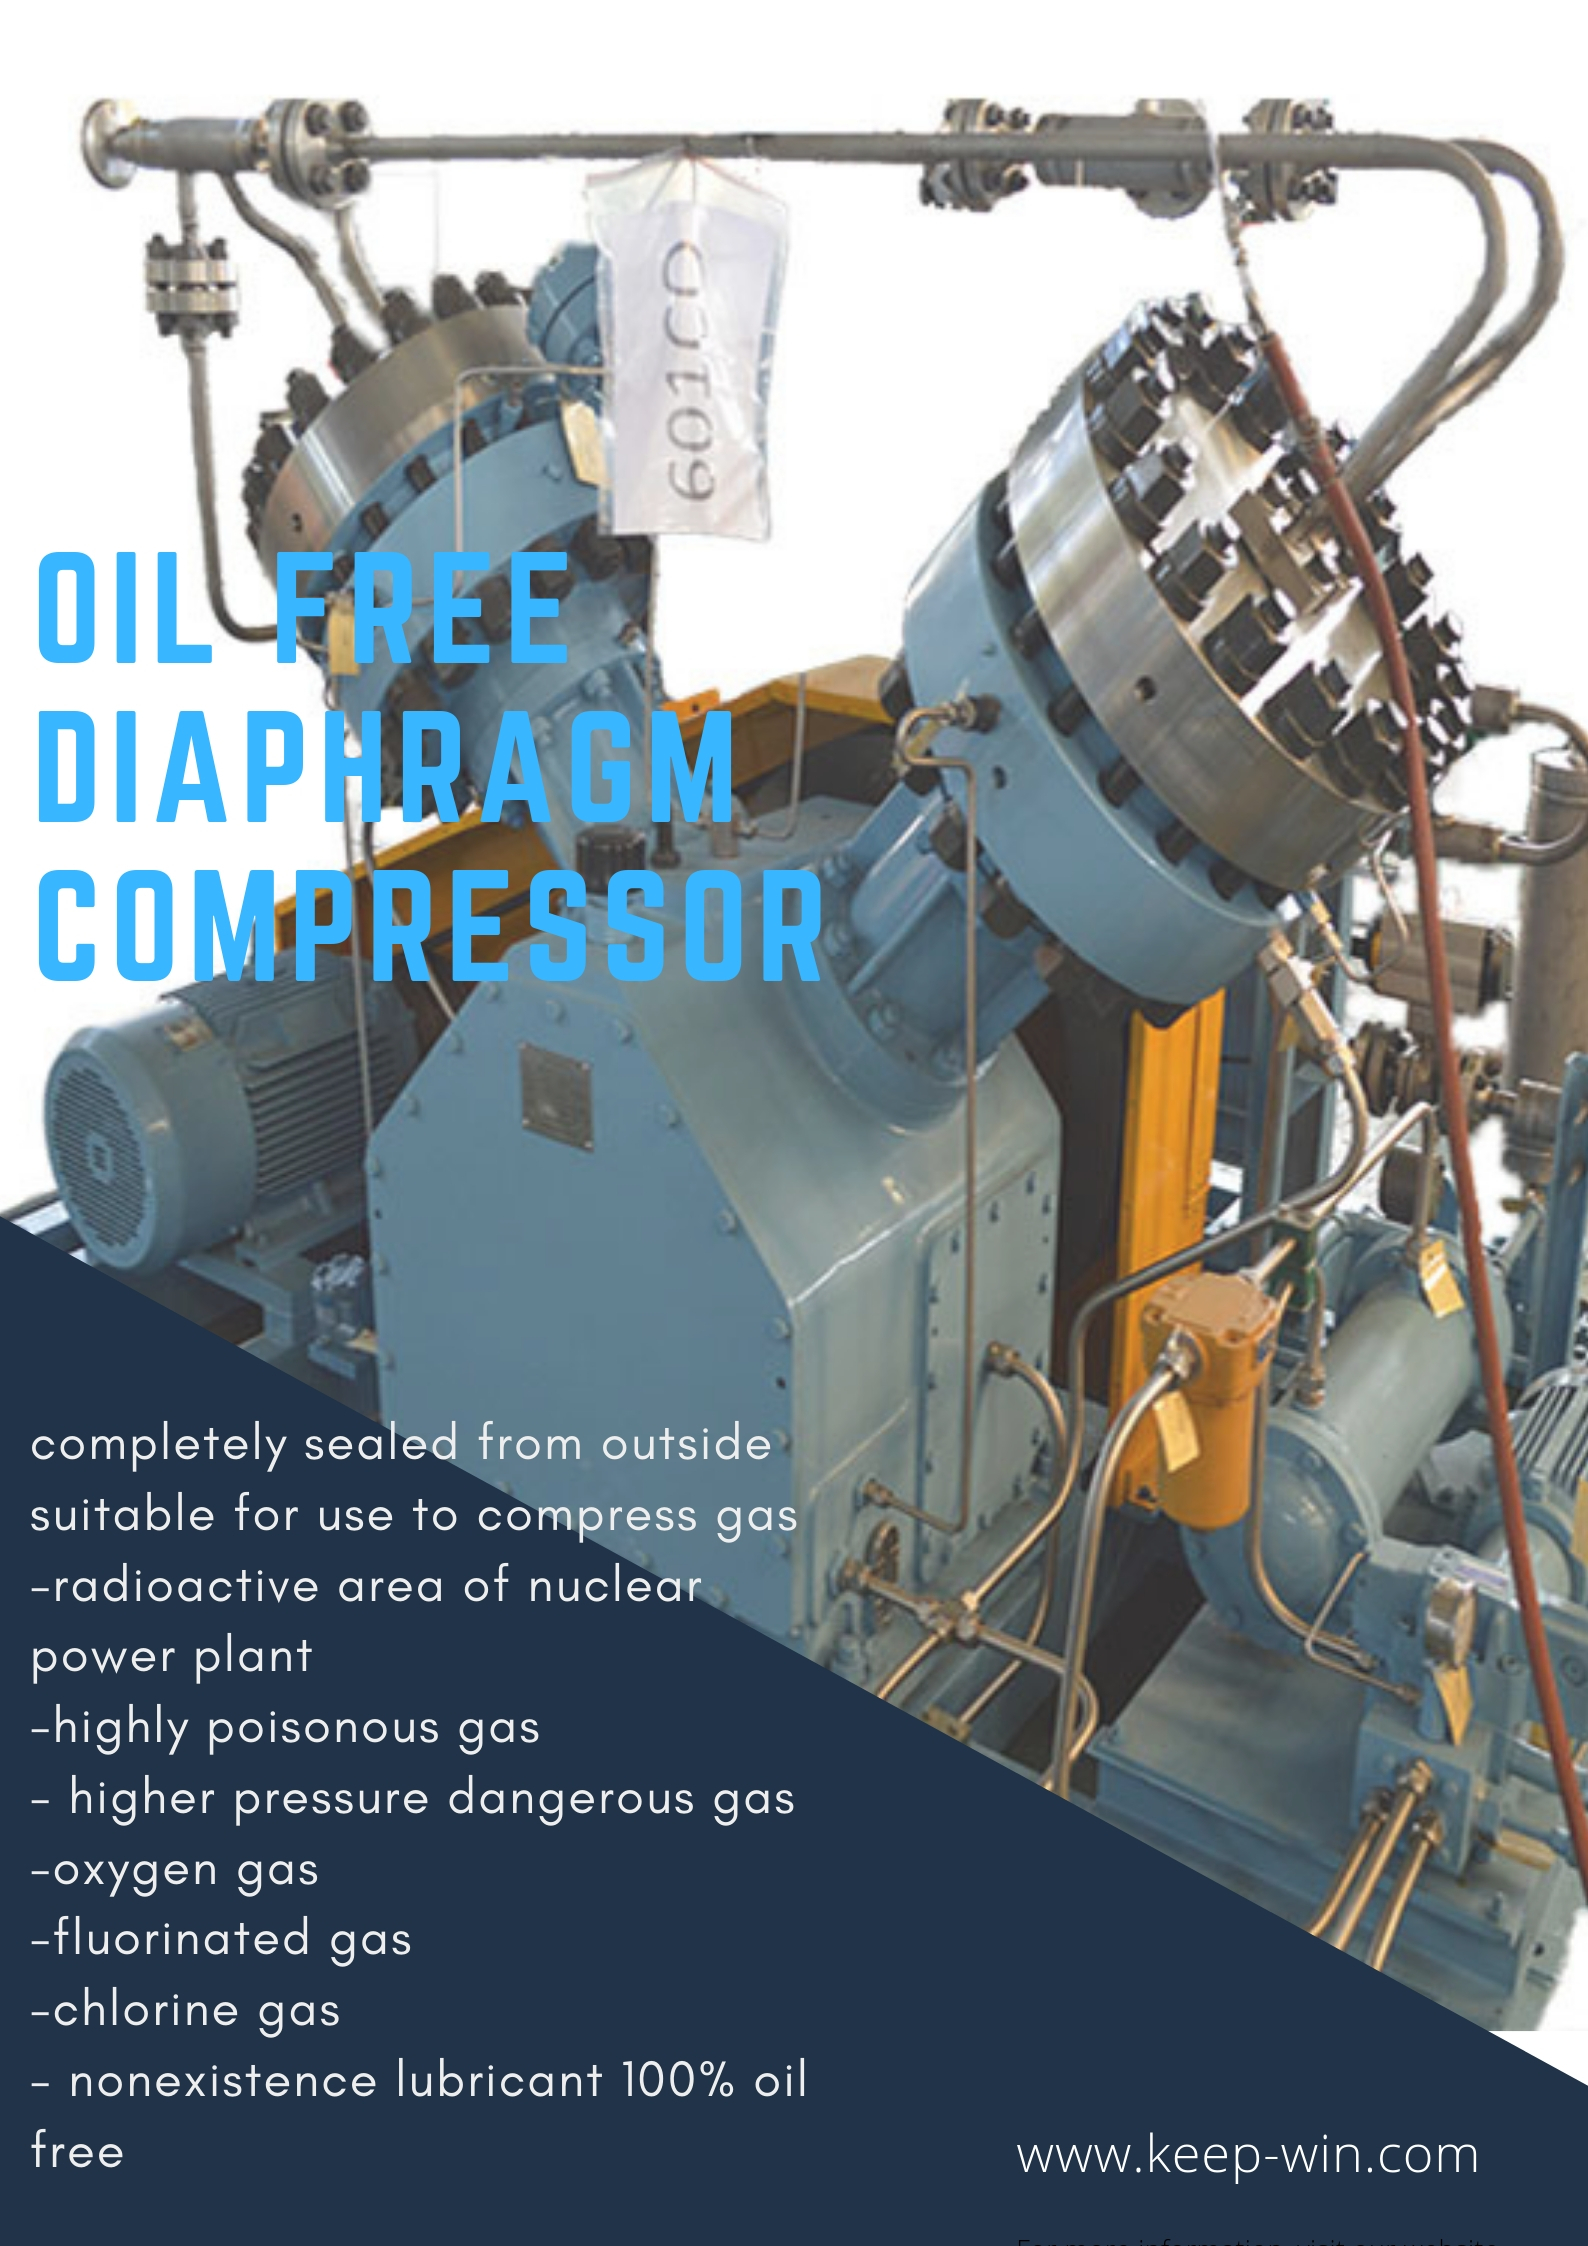 High purity Oil Free Diaphragm Compressor